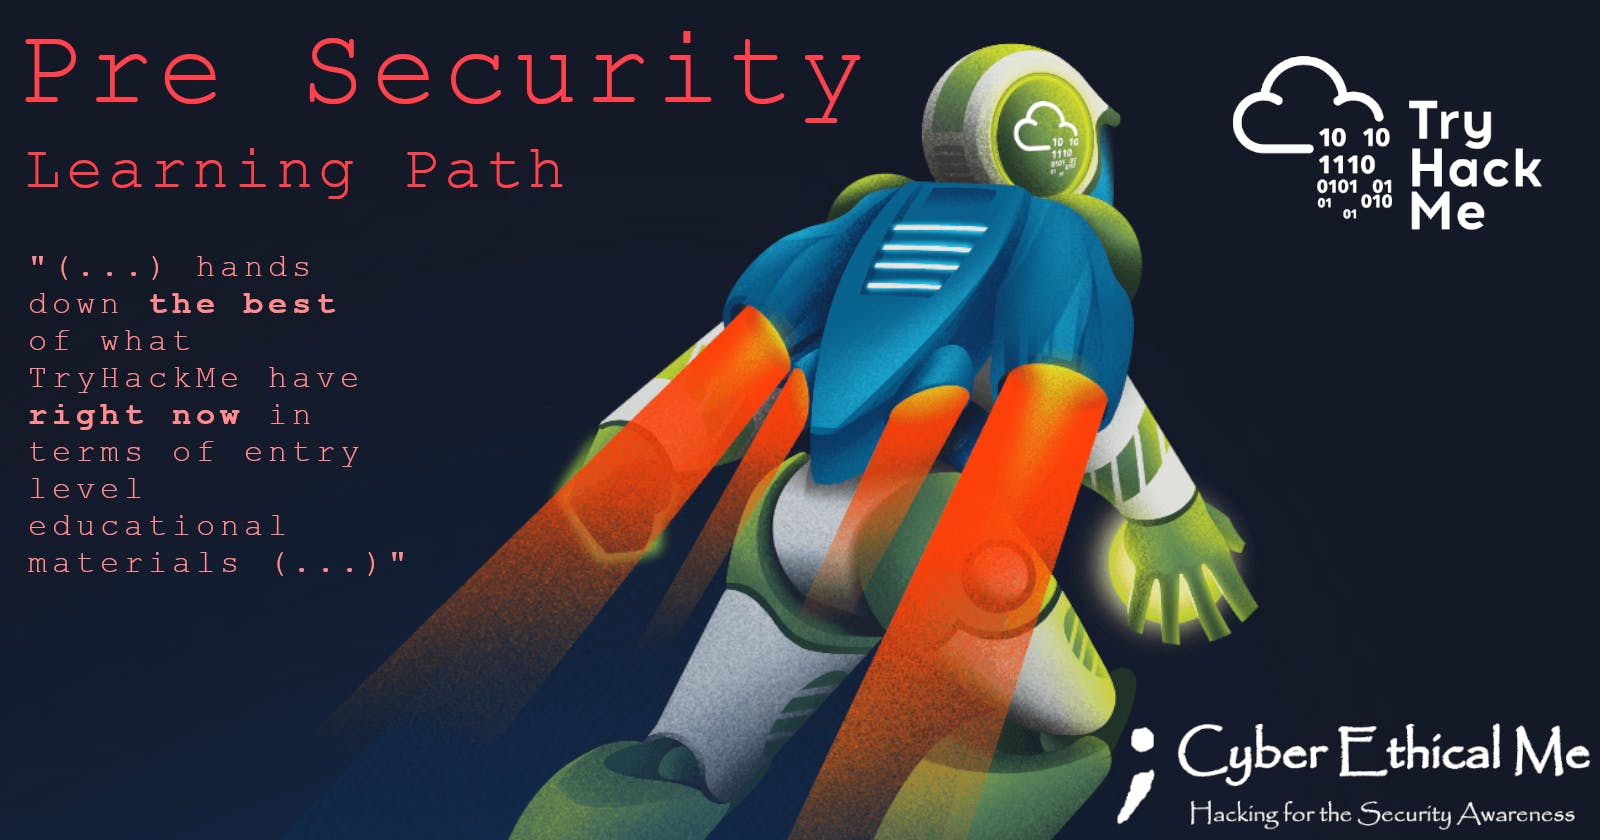 Review: Pre Security Learning Path